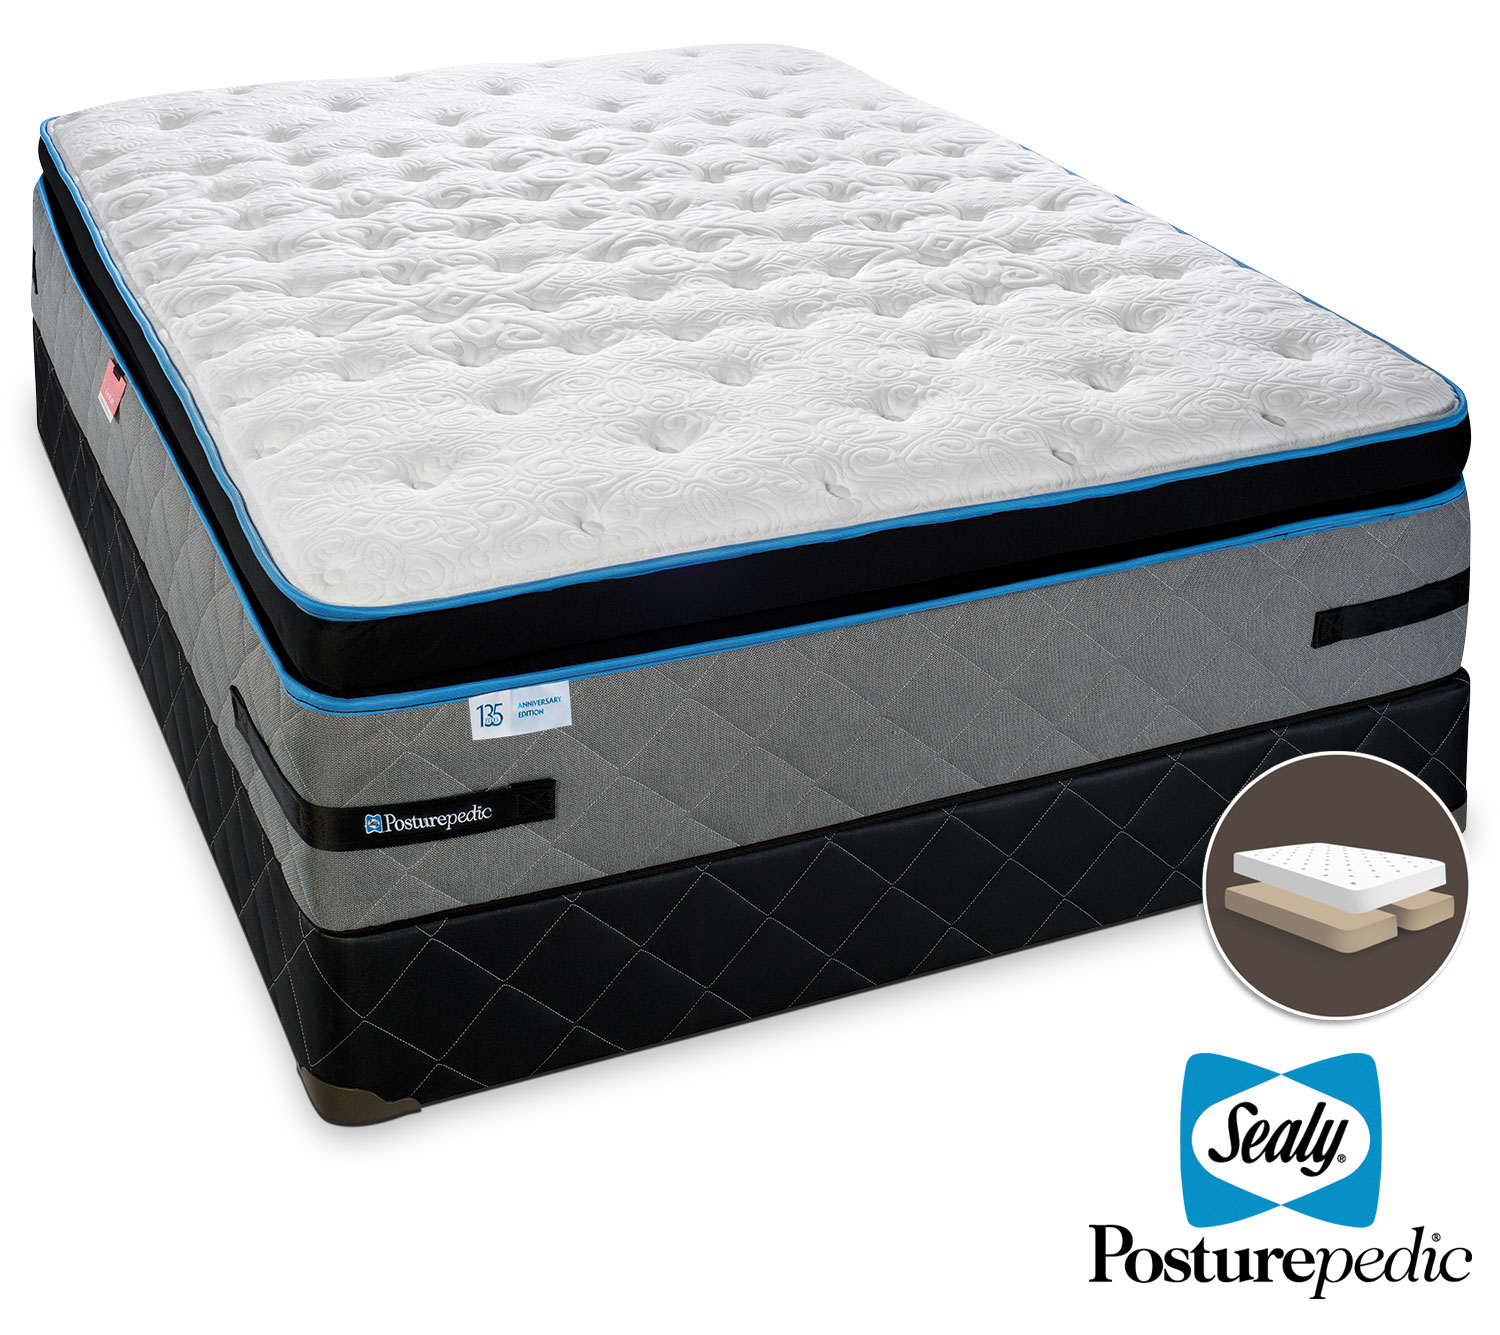 Mattresses and Bedding - Sealy Posturepedic J'adore Cushion Firm King Mattress/Split Boxspring Set